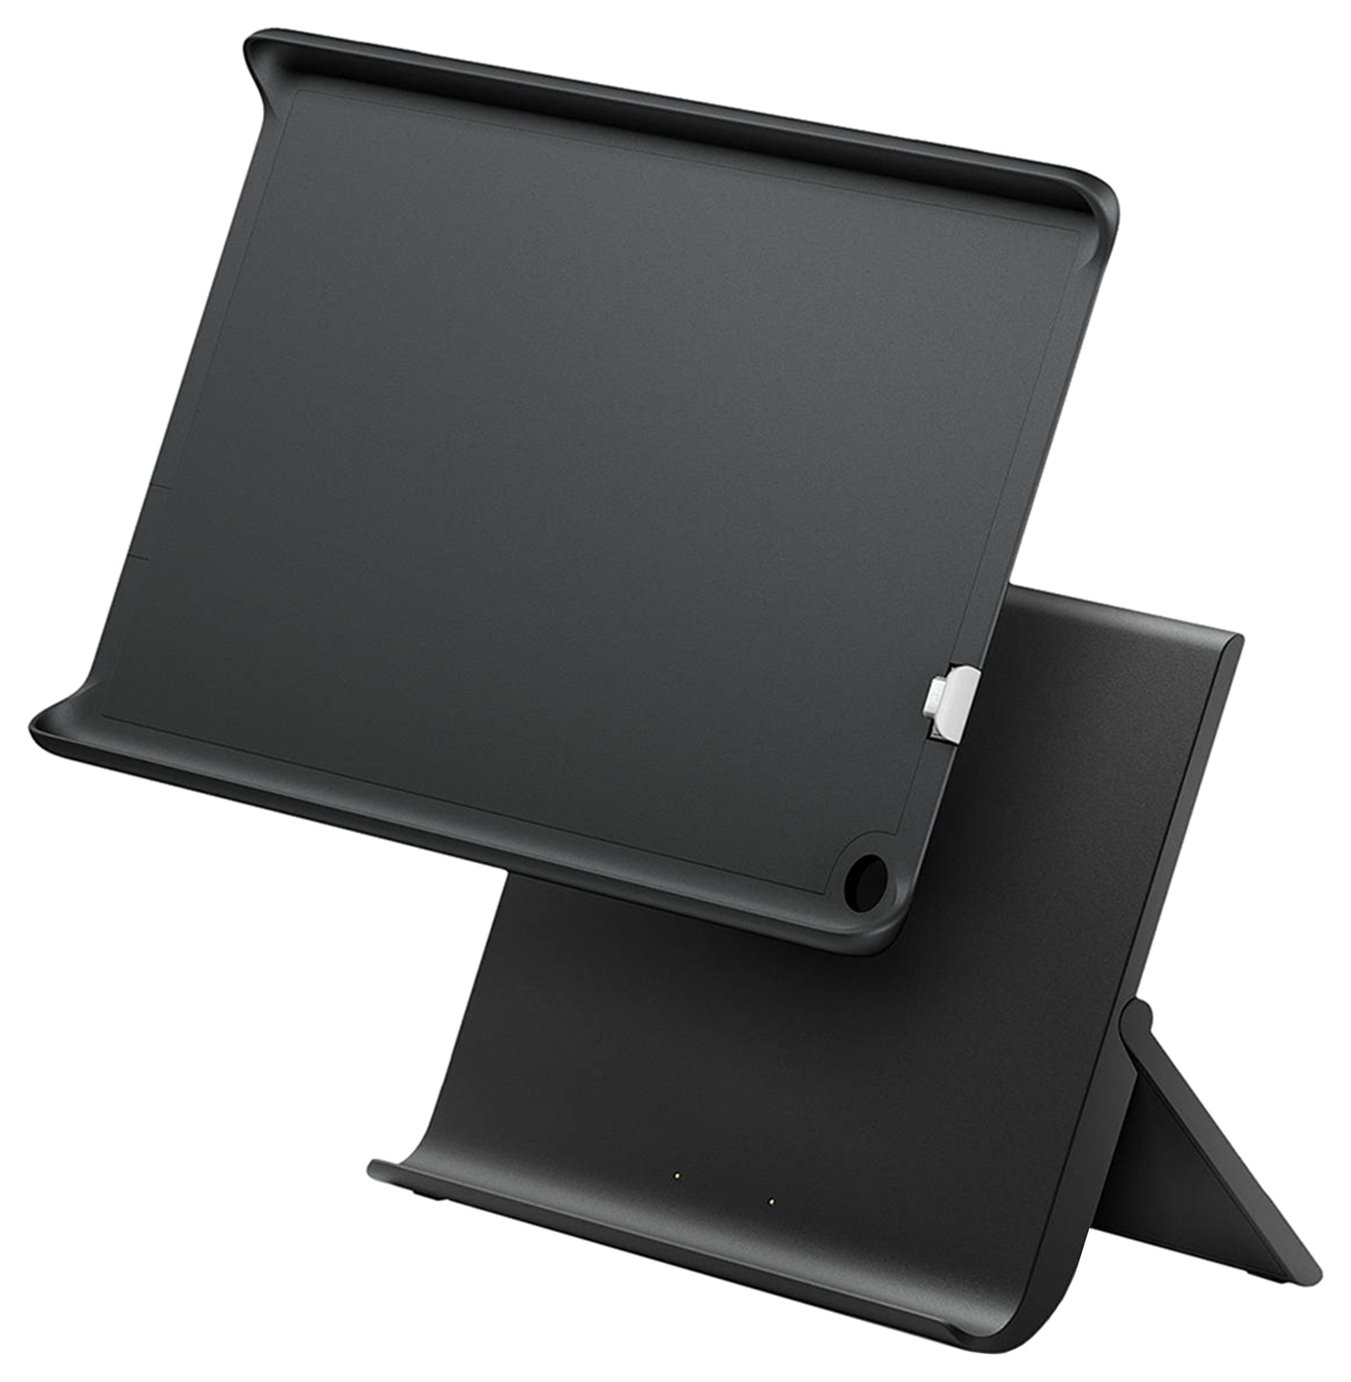 Amazon Show Mode Charging Dock for Fire HD 10 - Black